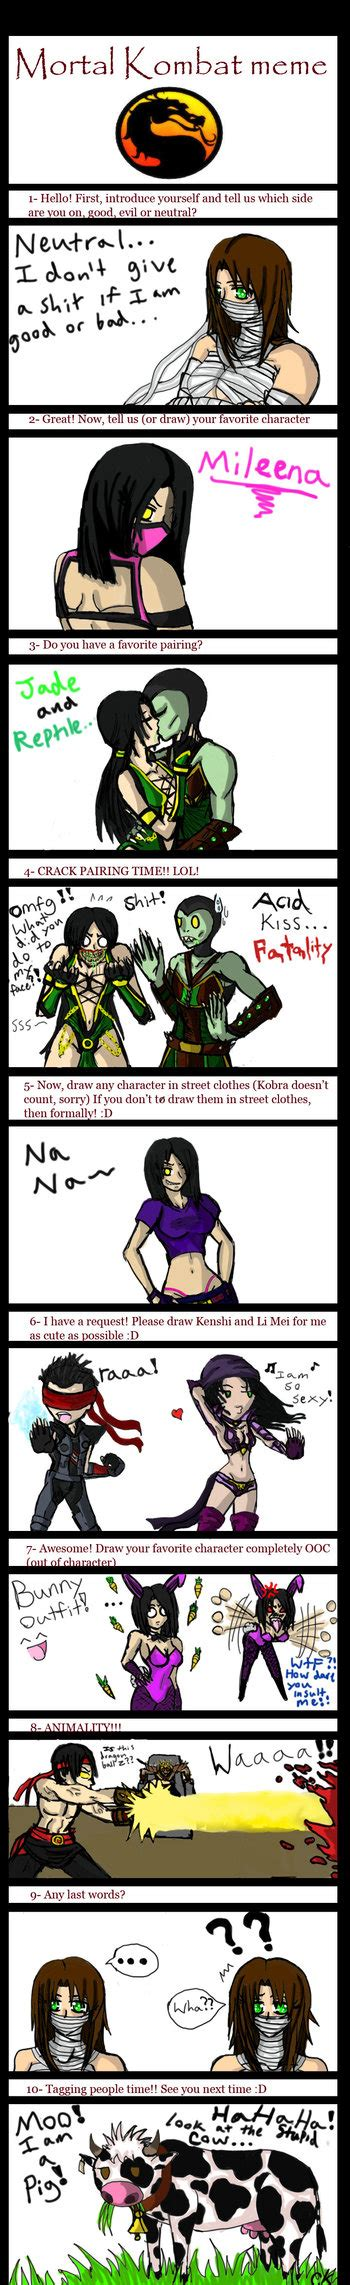 mortal kombat meme by sikura12 on deviantart